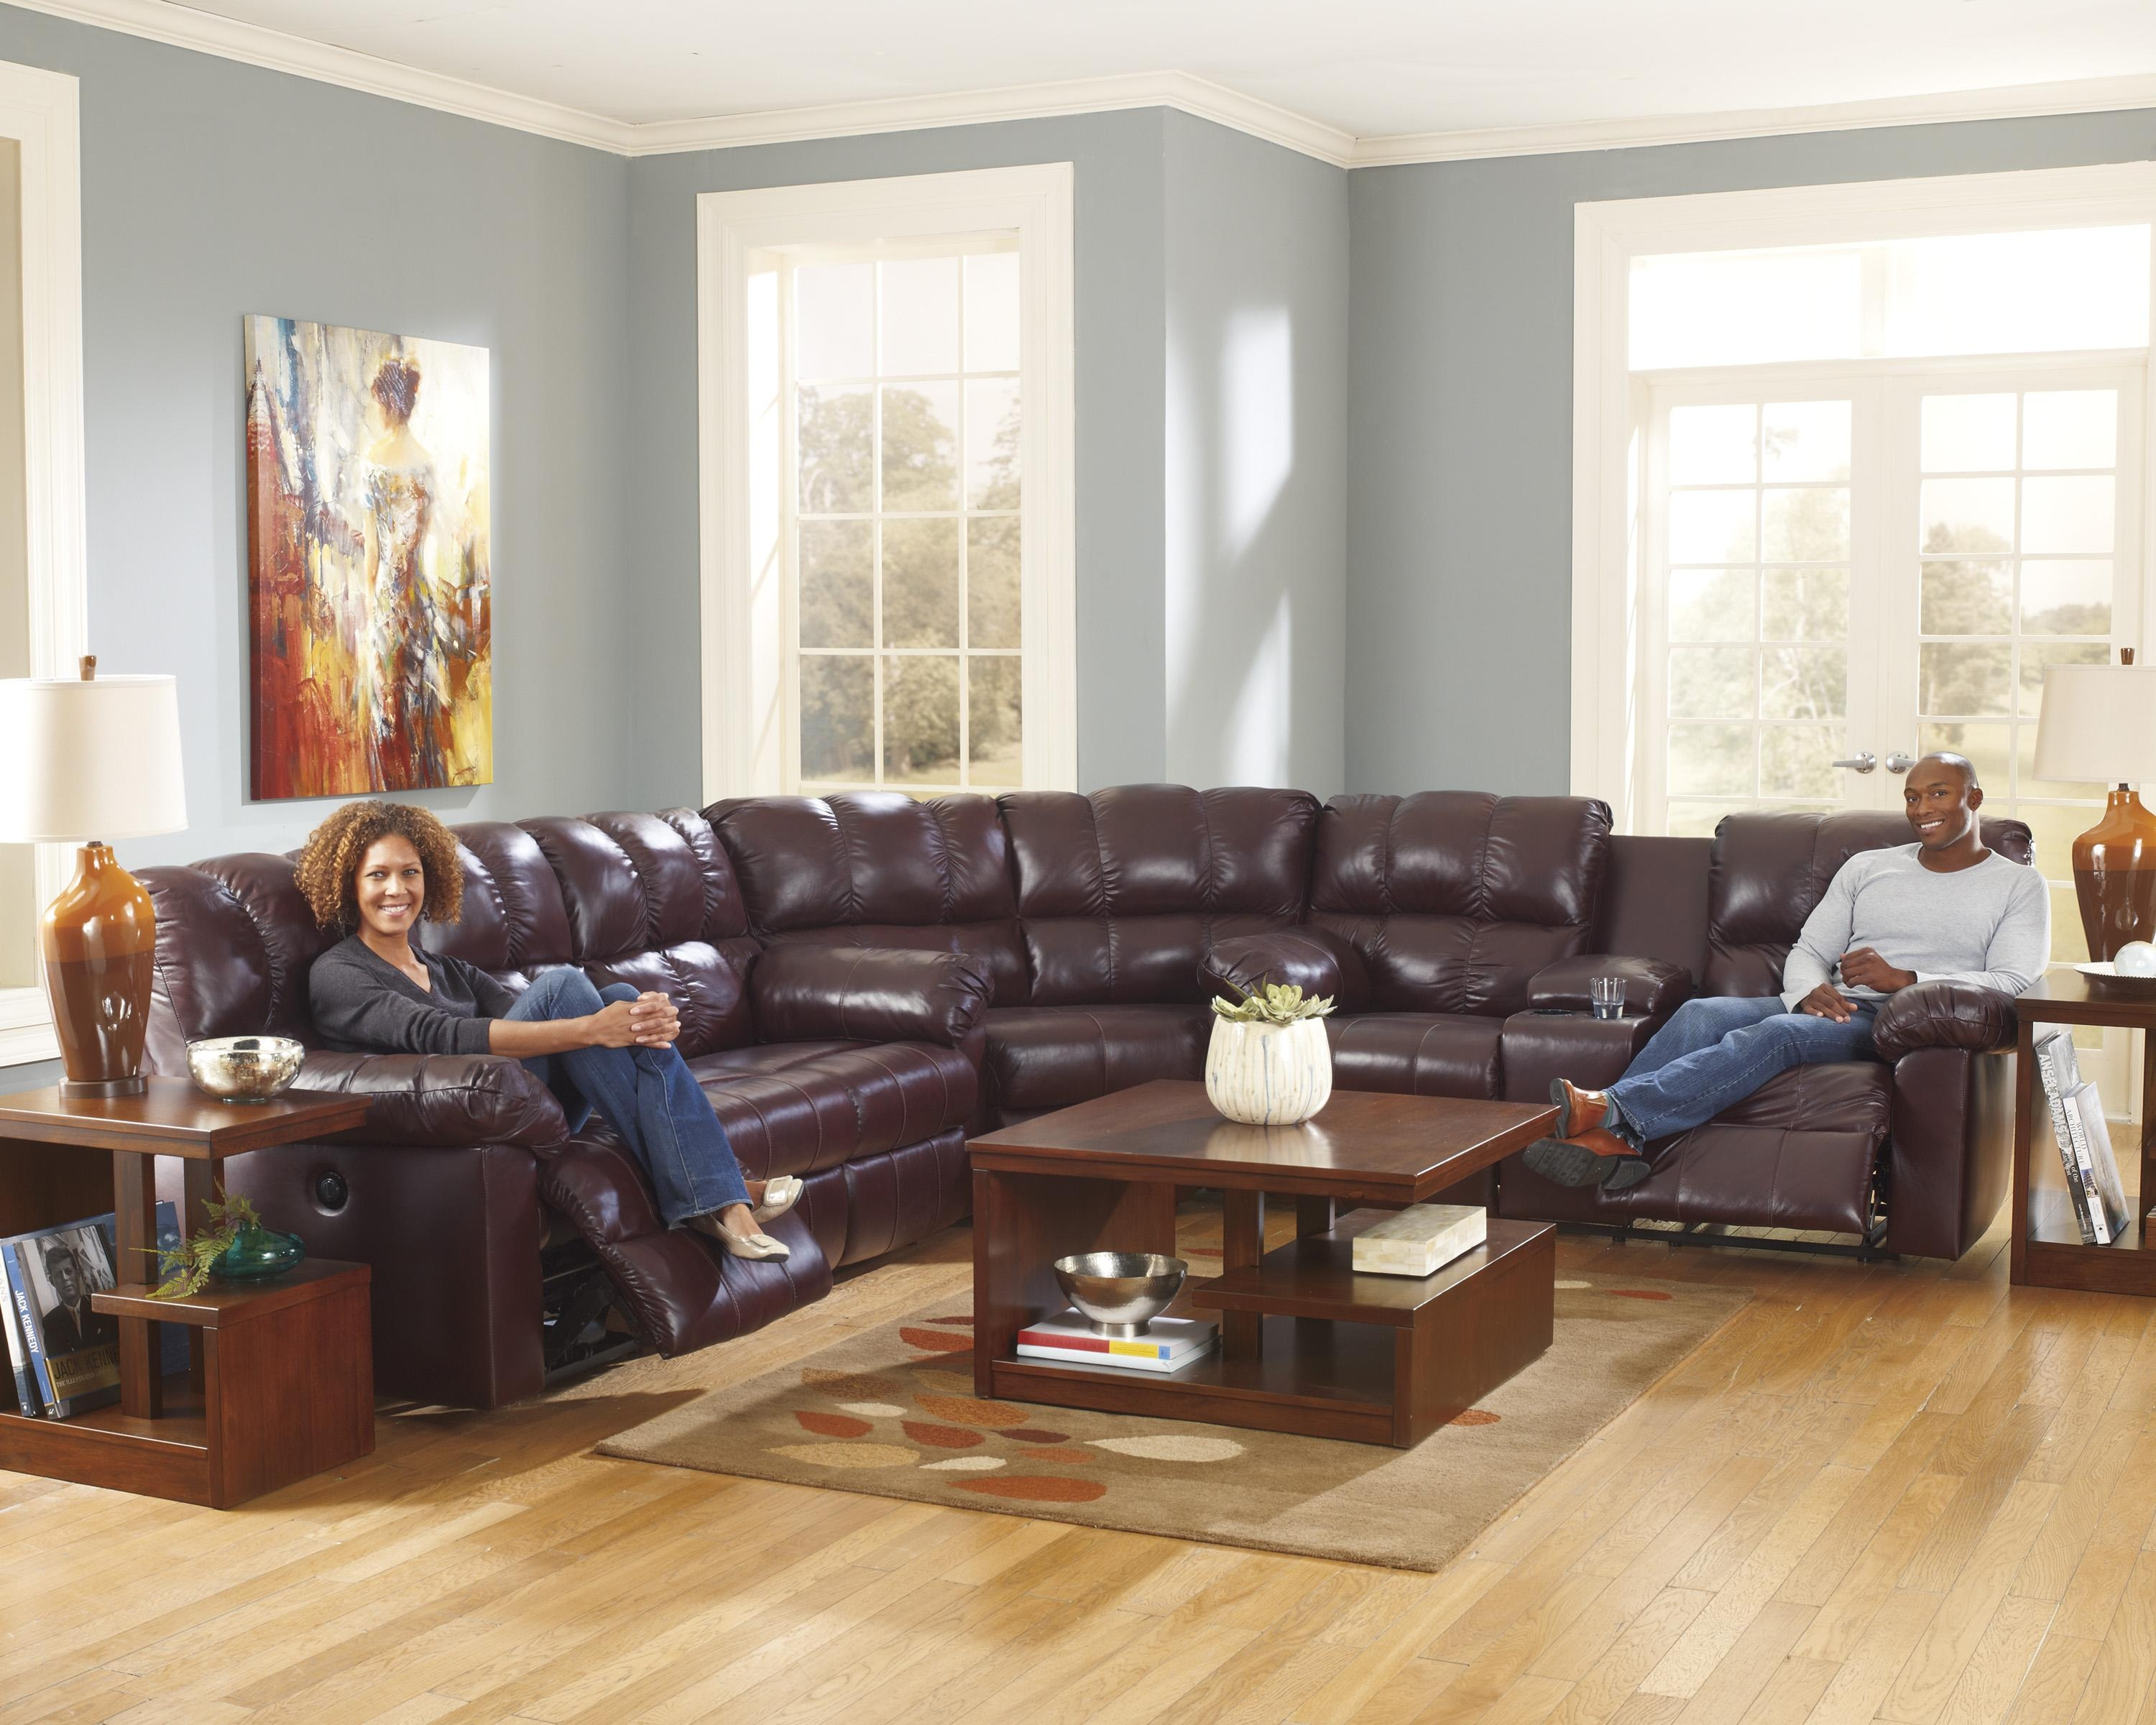 Leather Motion Recliner Sofas, Sectionals – Furniture Decor Showroom Throughout Leather Motion Sectional Sofa (View 14 of 20)